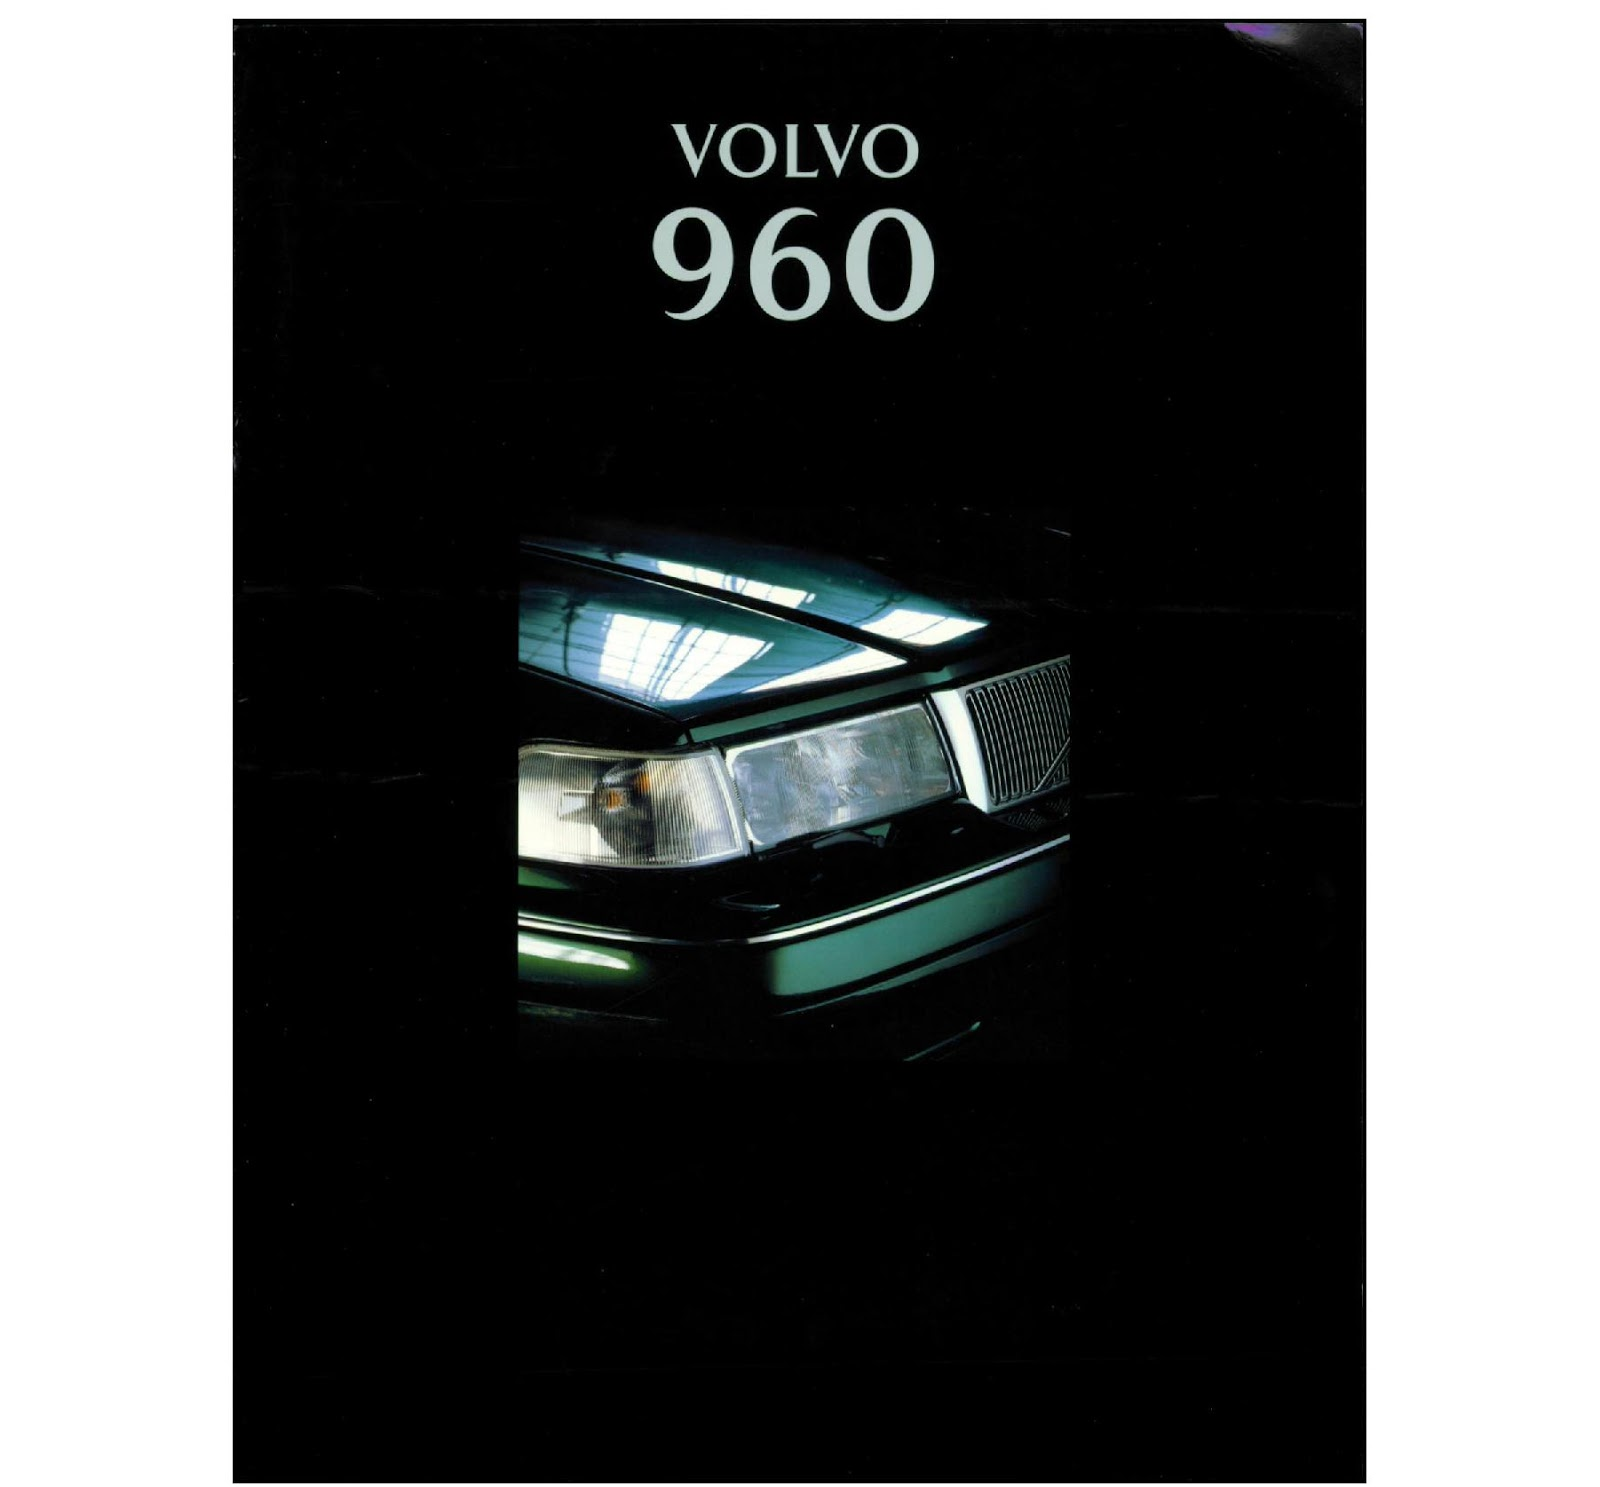 Download A Brochure For Volvo Models: My World Of Volvo: Volvo 960 Brochure (NL